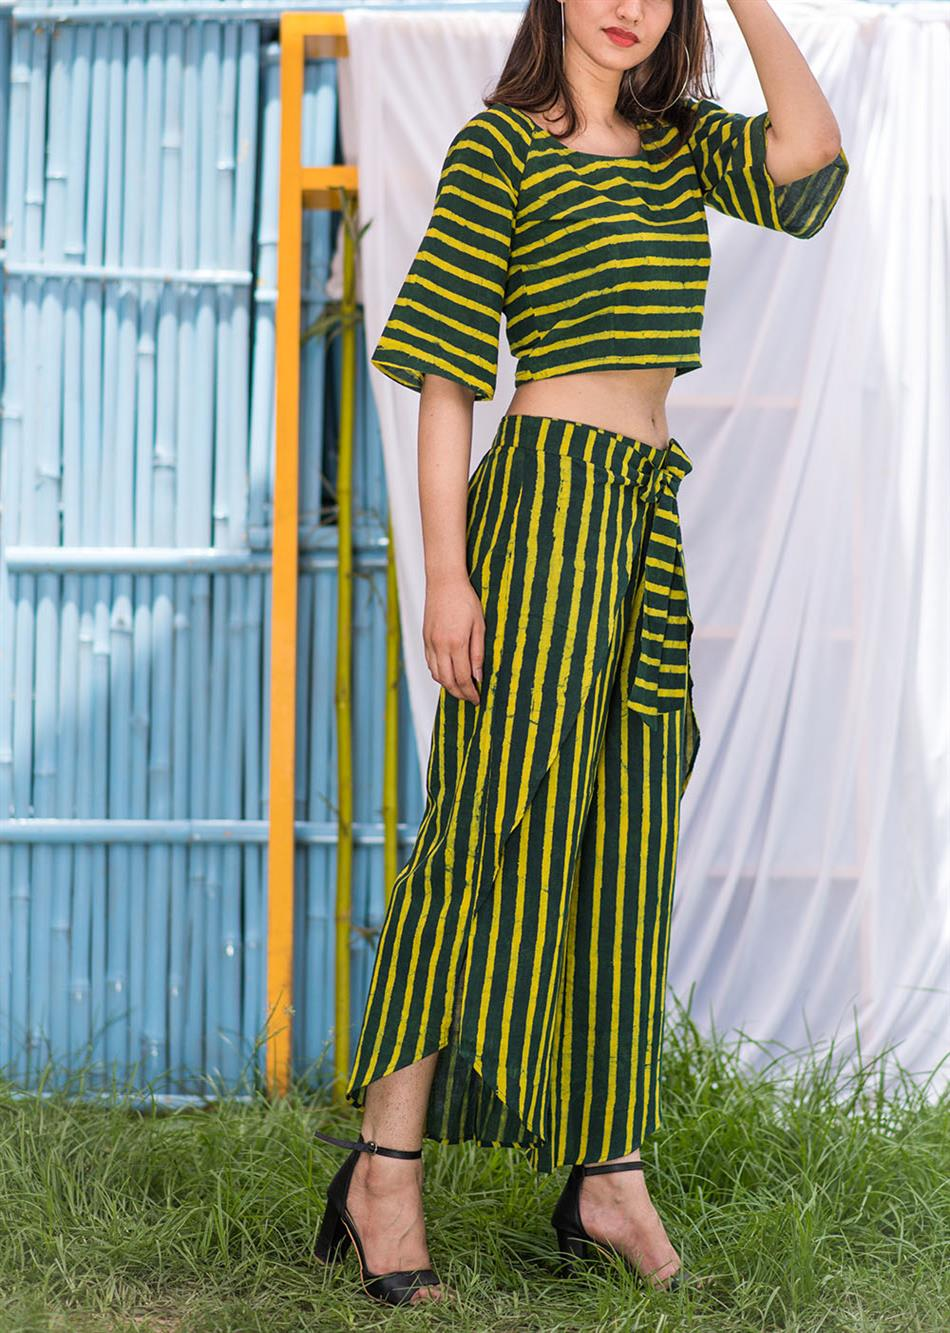 Groovy Tie-Up (Striped Pants) By Jovi Fashion